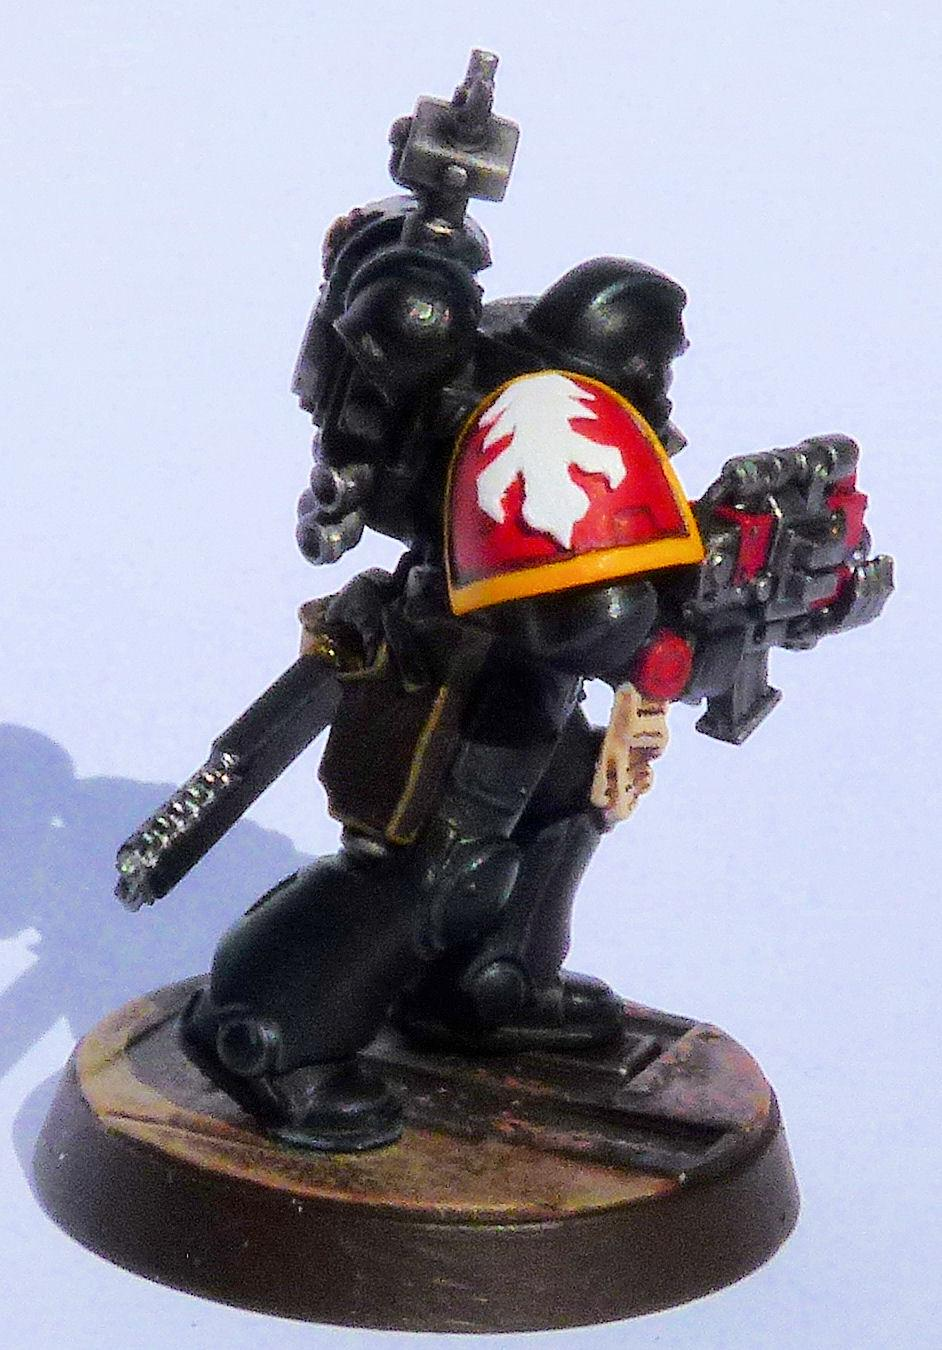 Imperial Talons Deathwatch Veteran Right Side